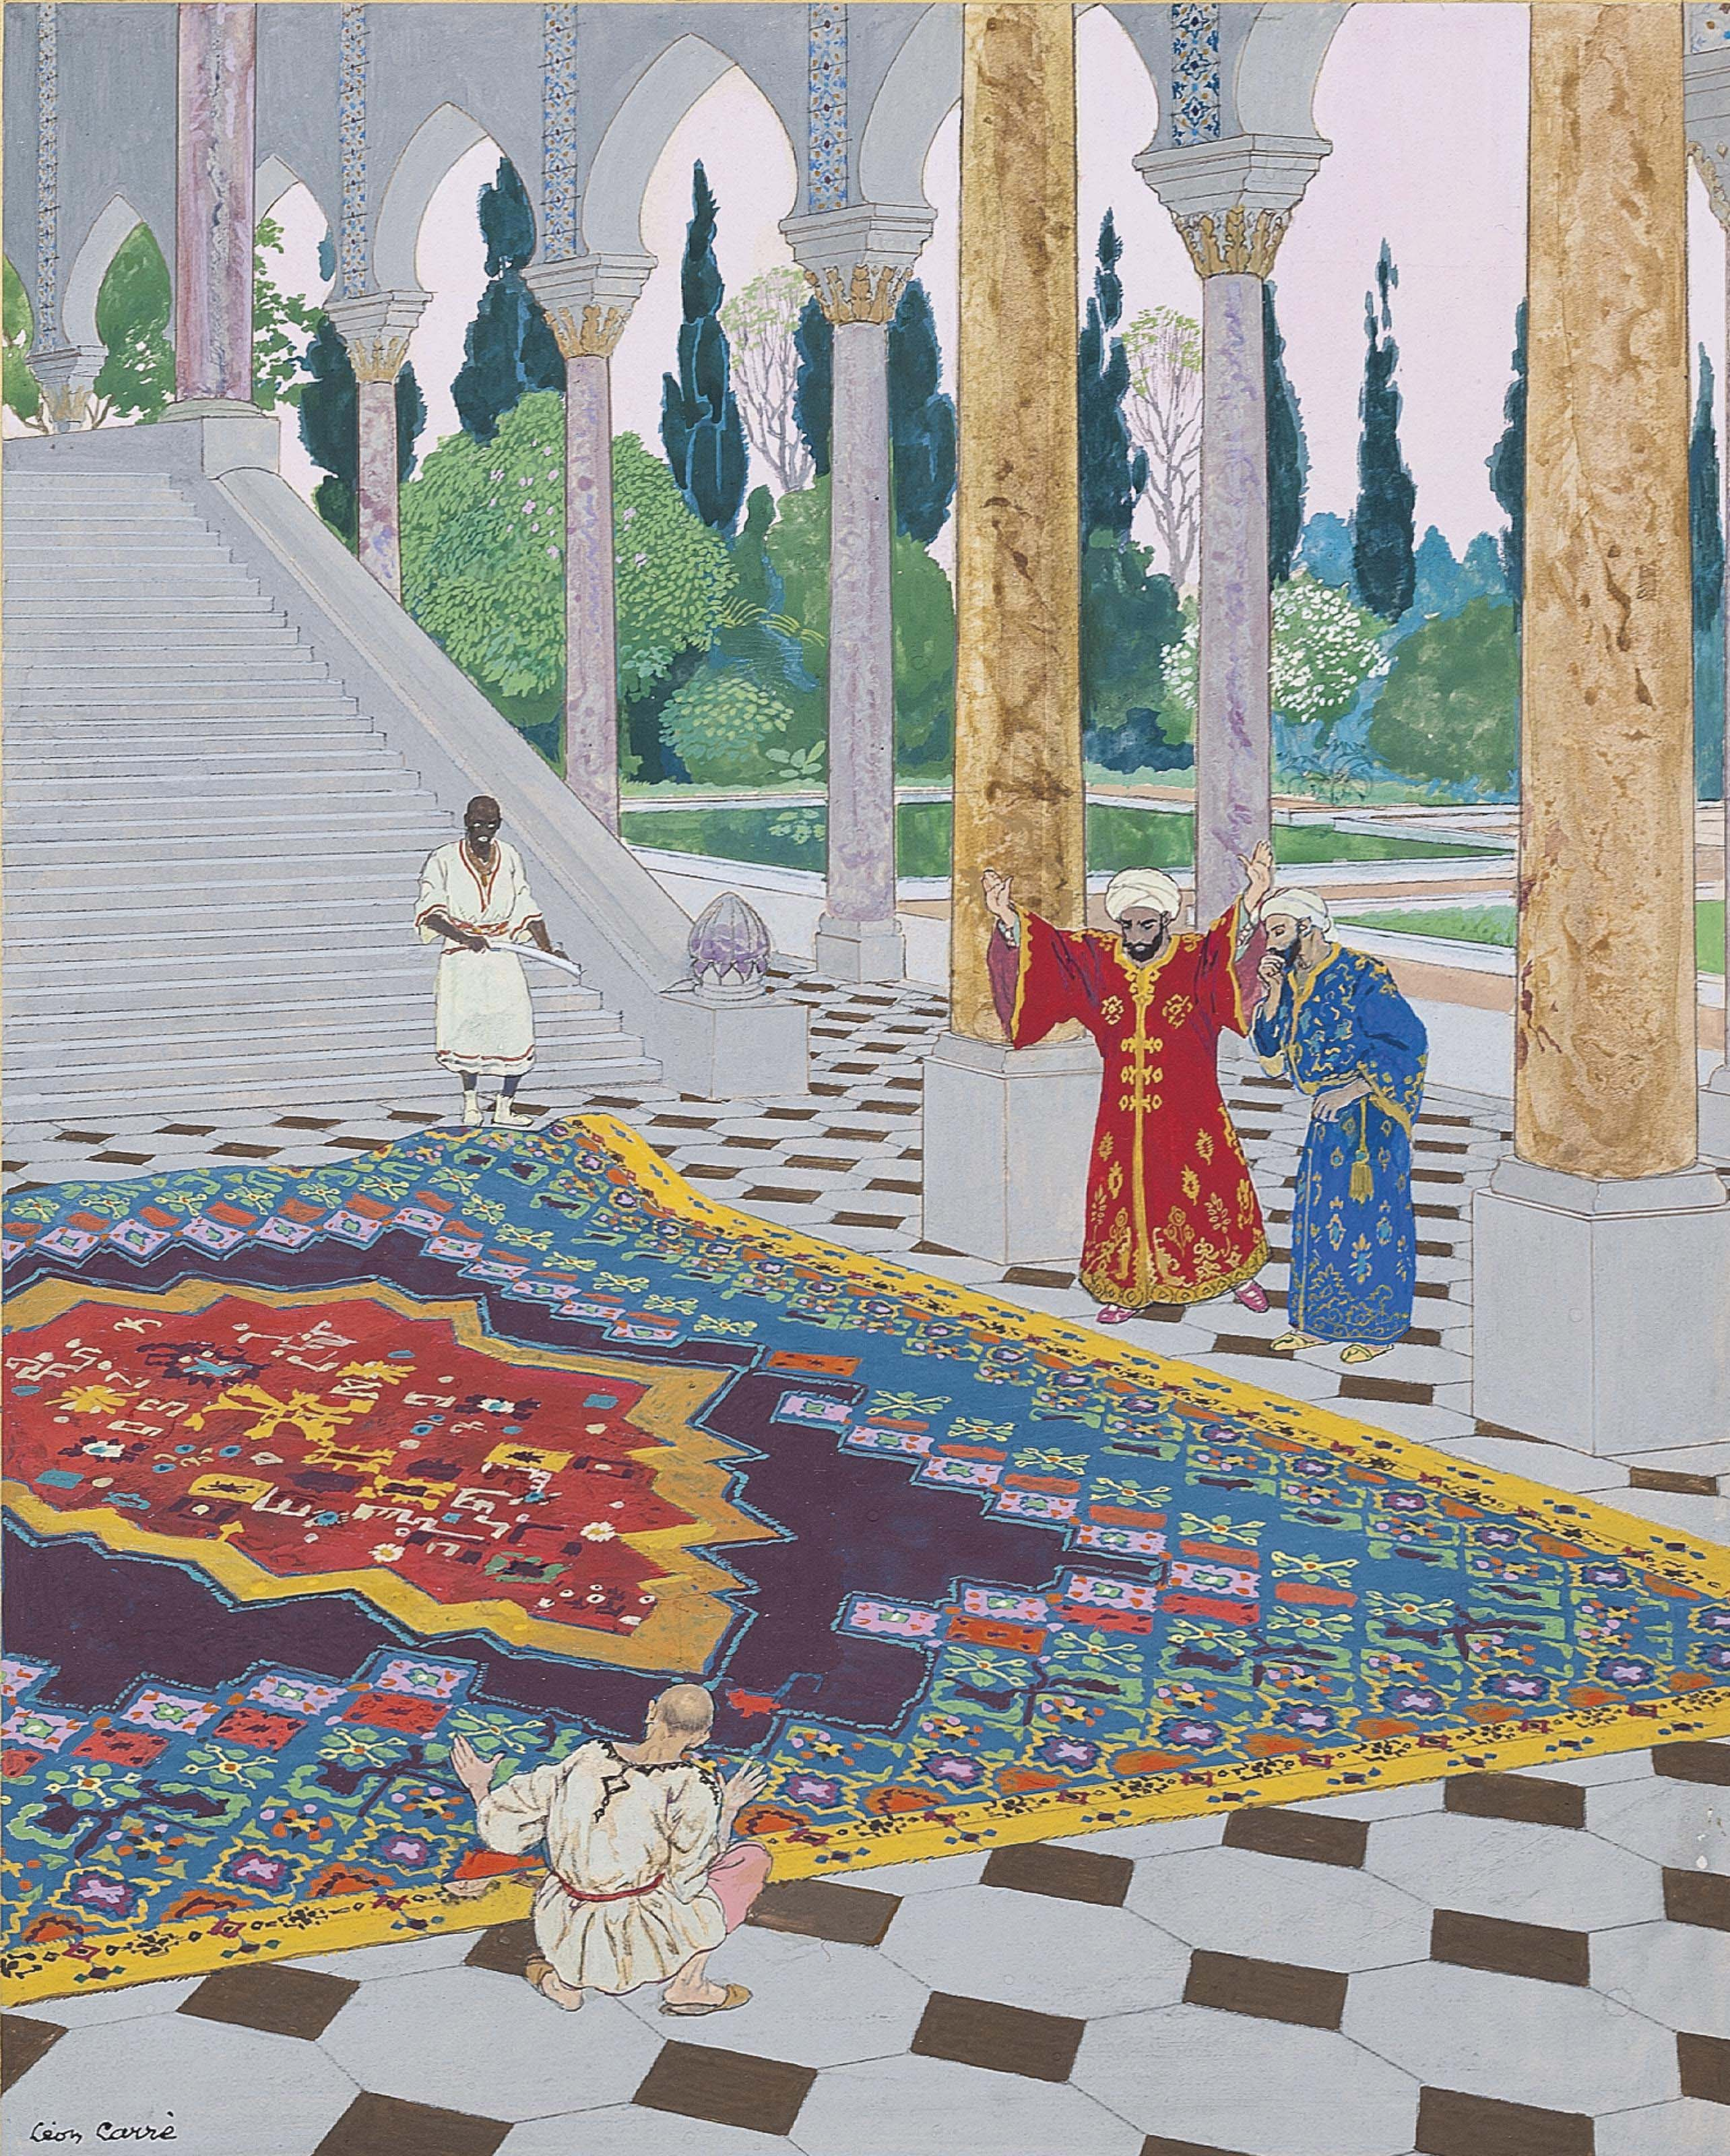 A magnificant carpet was spread out, from 'The Story of Baïbars and the Police Captains'